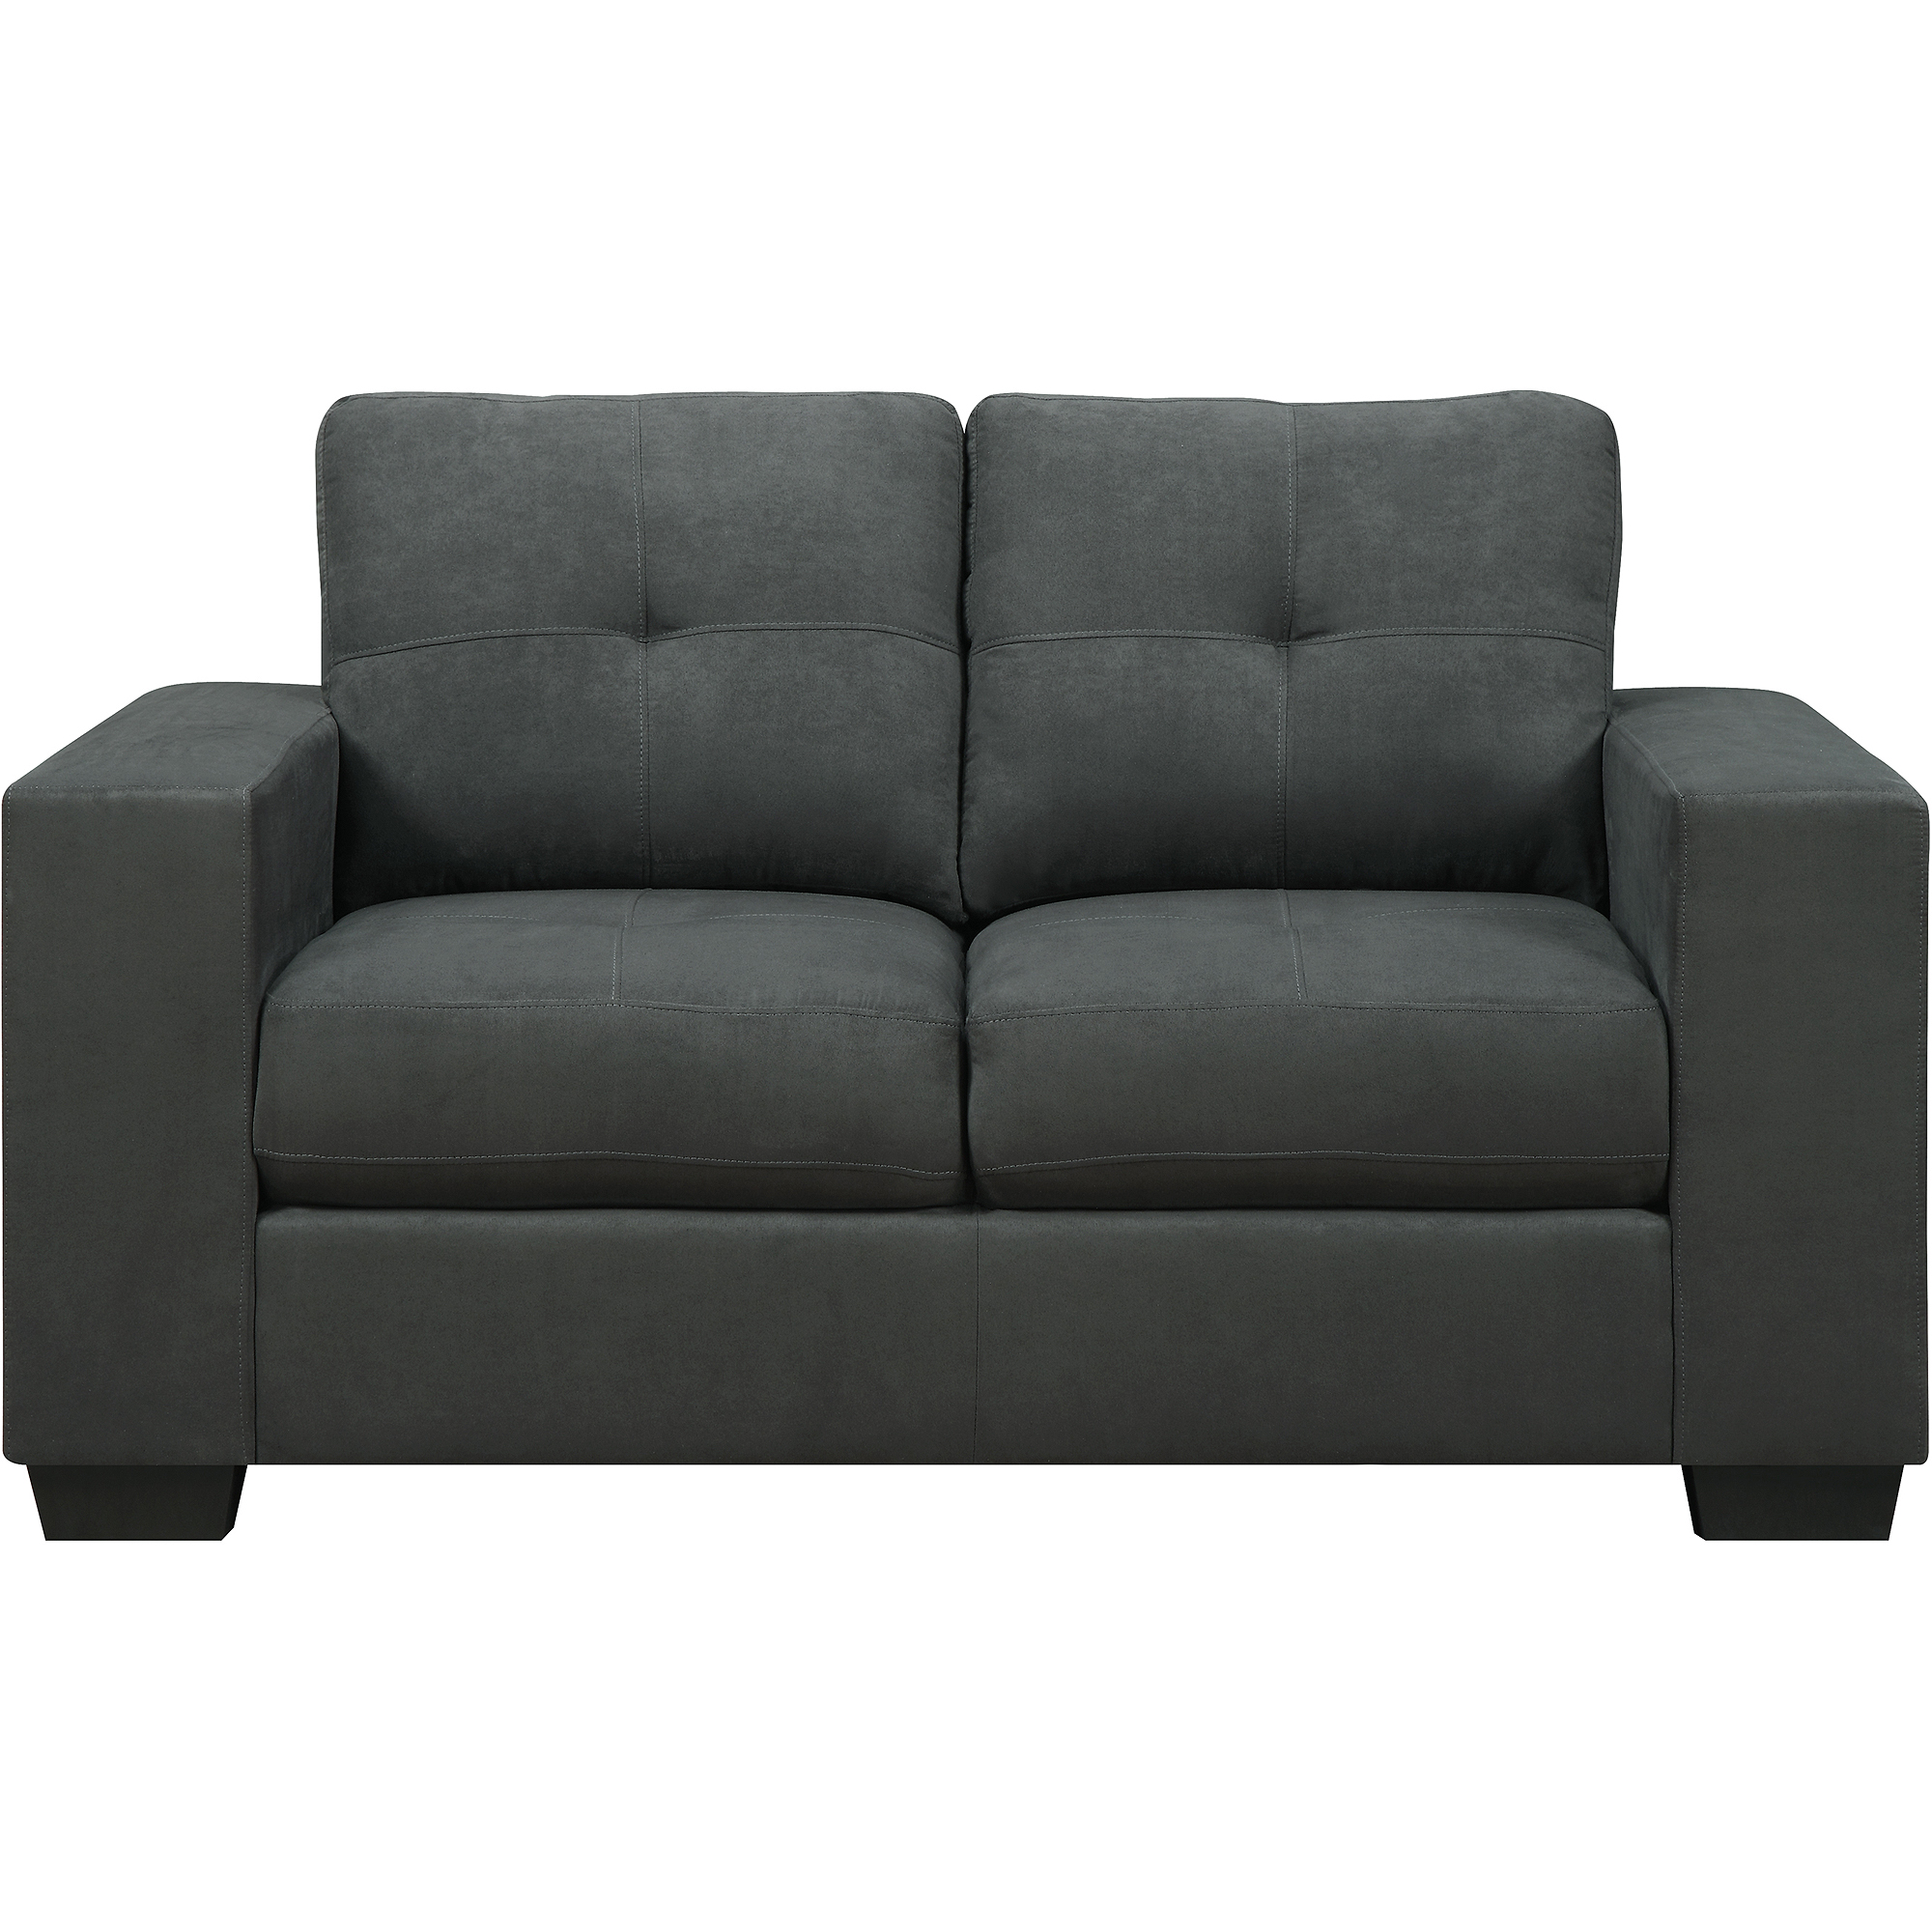 Dorel Home Asher Microfiber Loveseat Gray Walmart